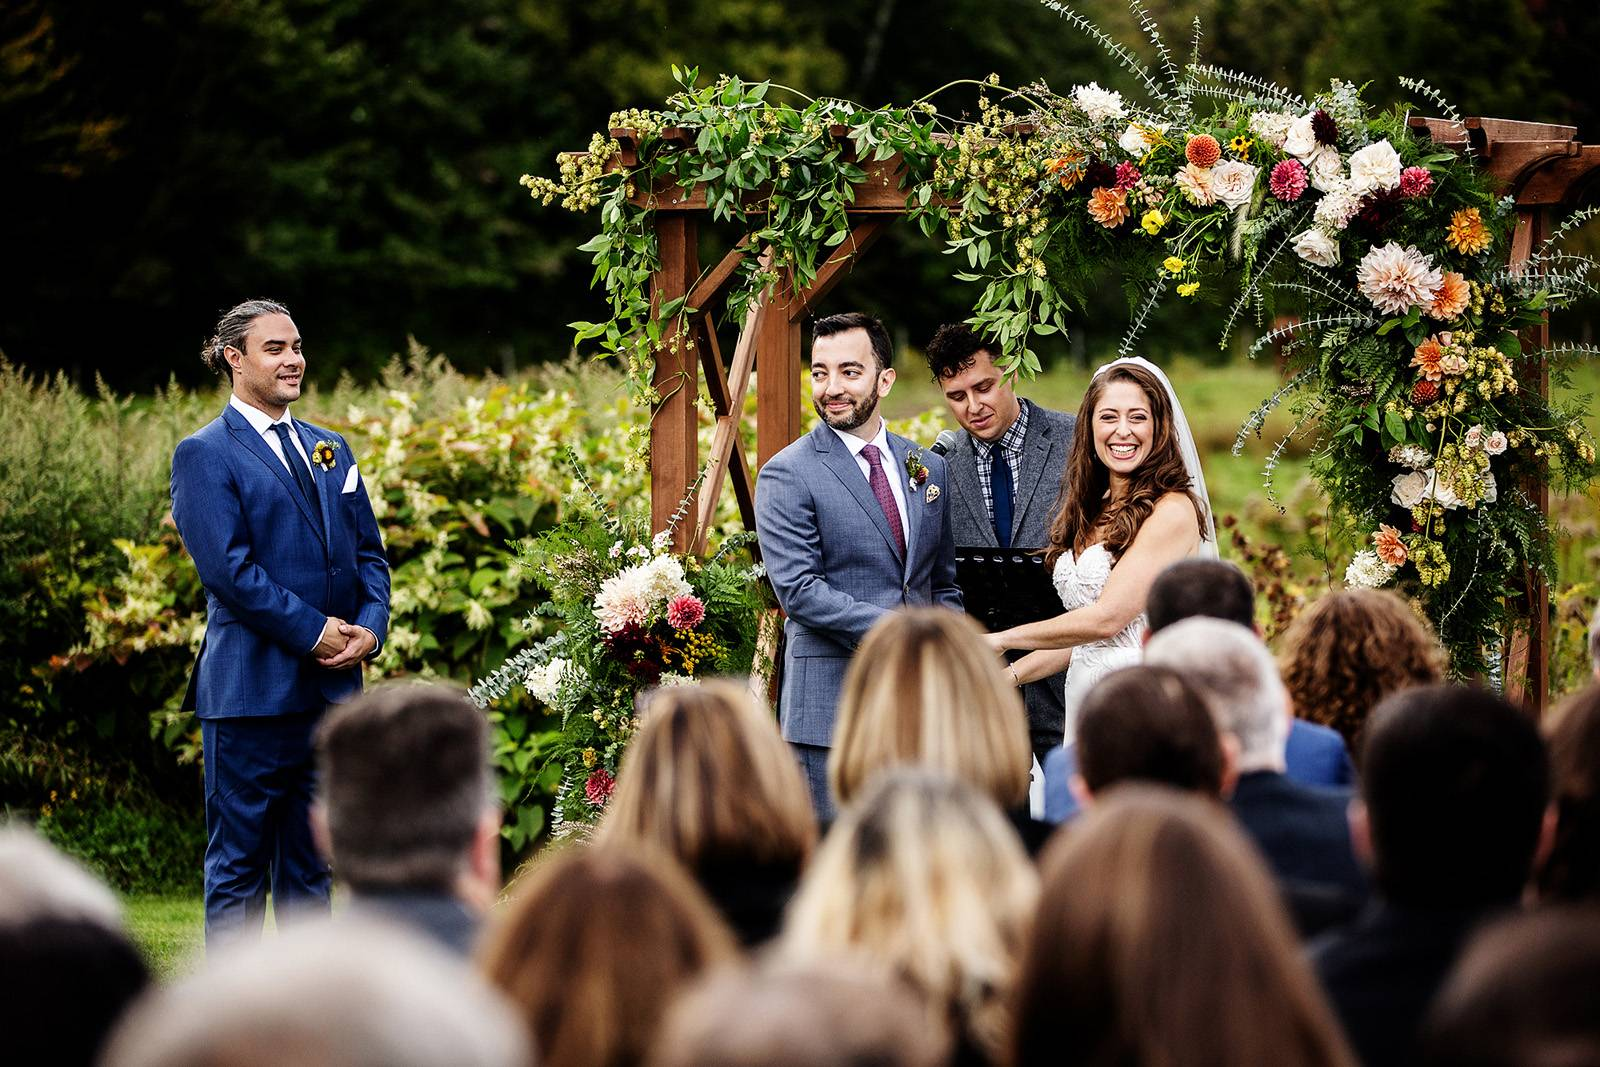 Lush floral ceremony archway decor at fall wedding at Topnotch Resort in Stowe Vermont